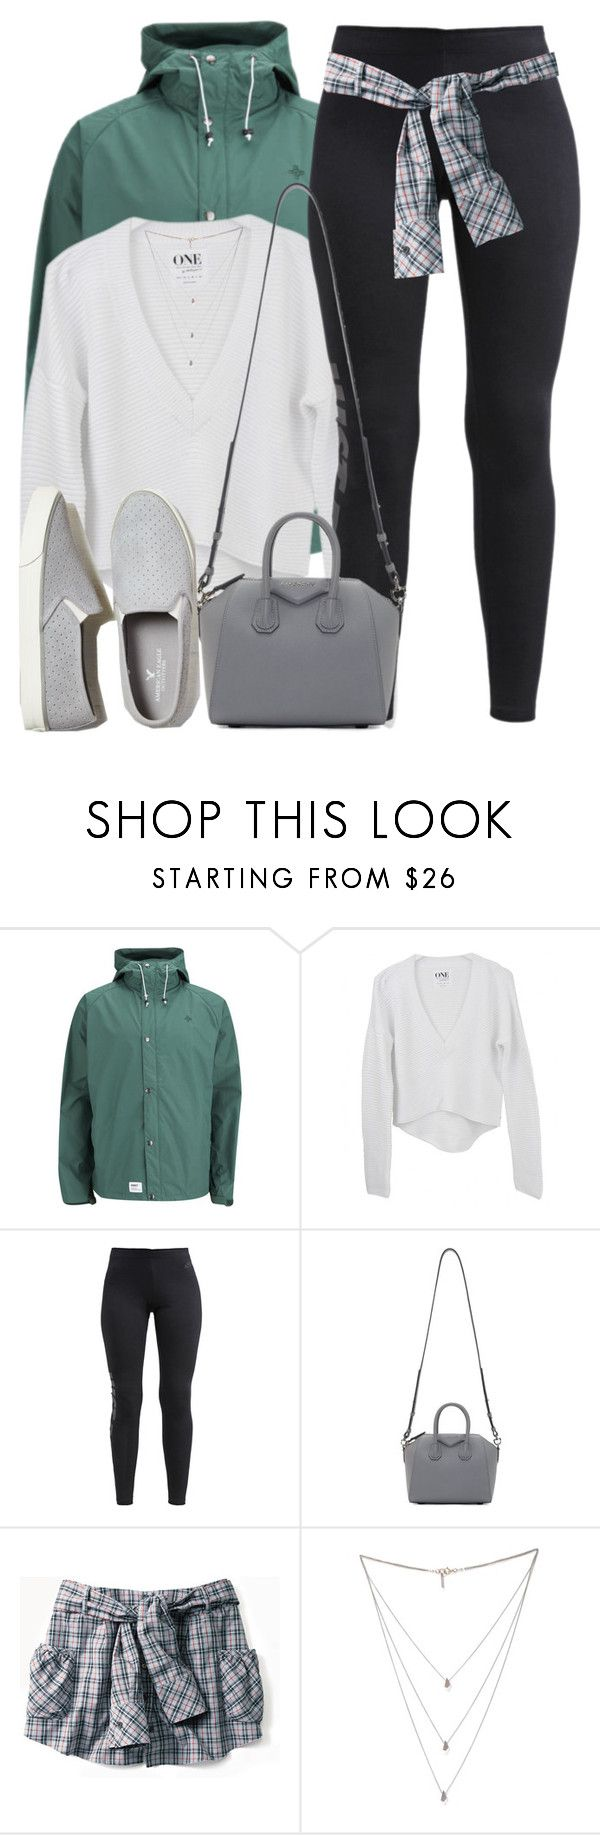 """""""rain rain go away"""" by aiyanaa ❤ liked on Polyvore featuring Addict, NIKE, Givenchy, Isabel Marant and American Eagle Outfitters"""